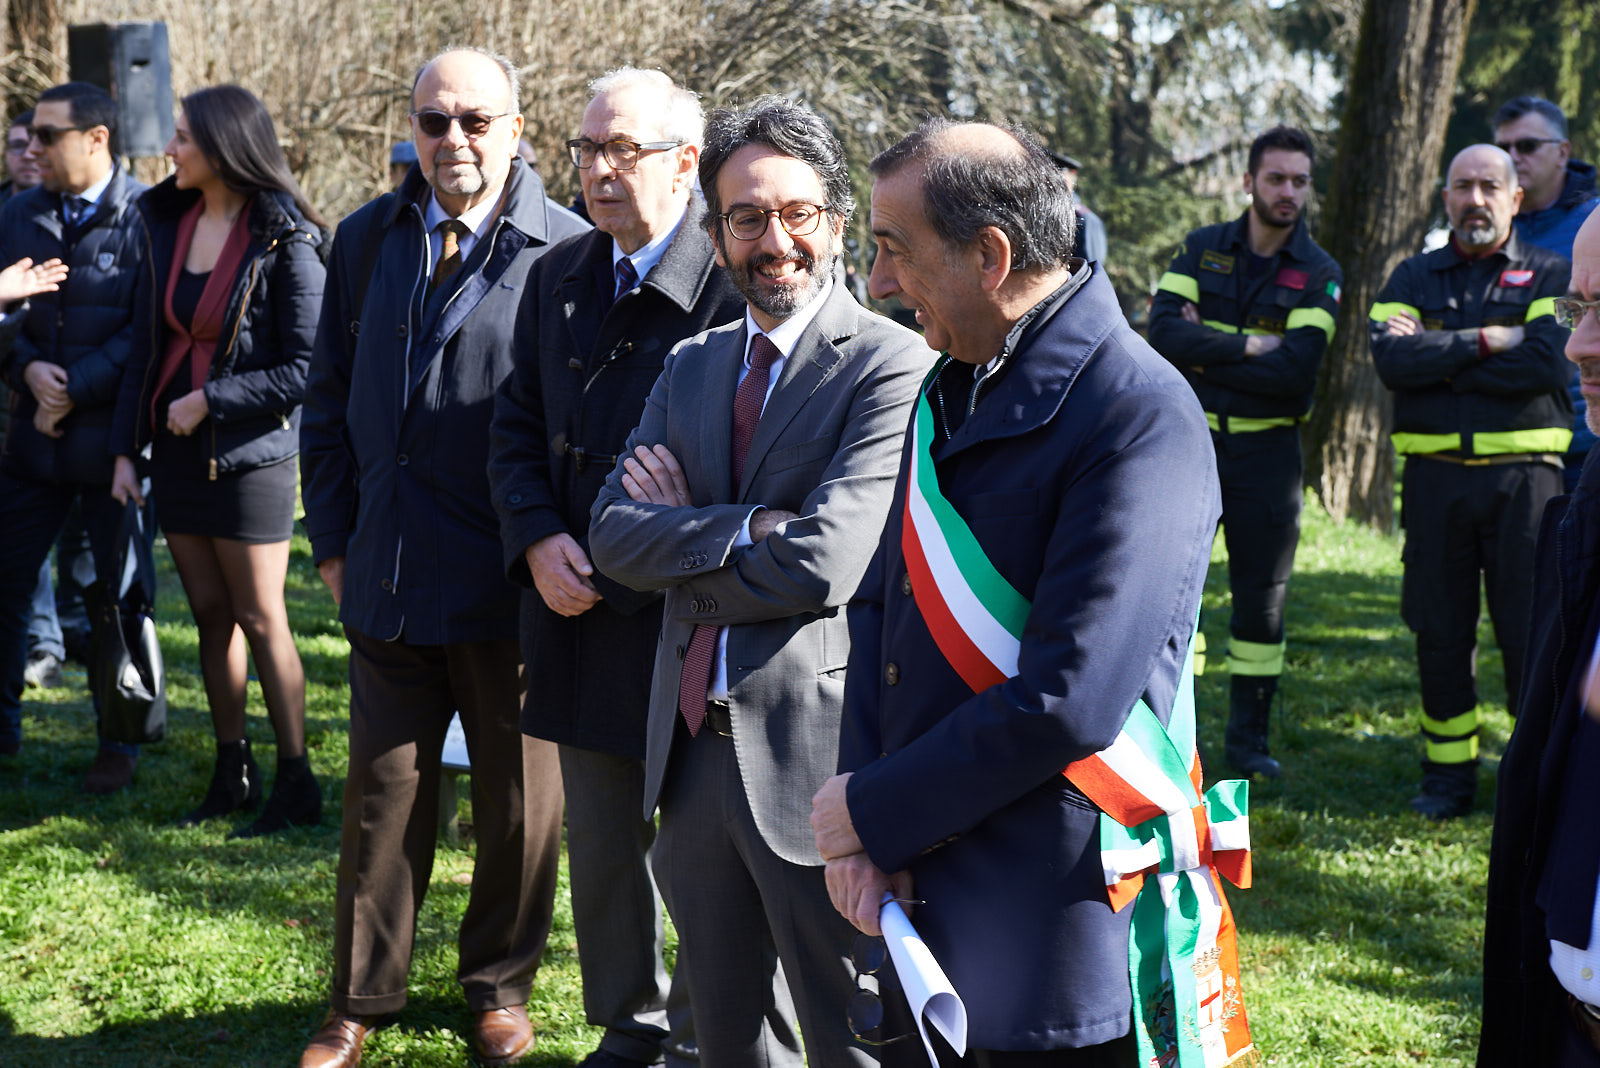 Giorgio Mortara - UCEI Vice President, Basilio Rizzo - Municipal Councilor, Lamberto Bertolé - President of the Municipal Council, Giuseppe Sala - Mayor of Milan